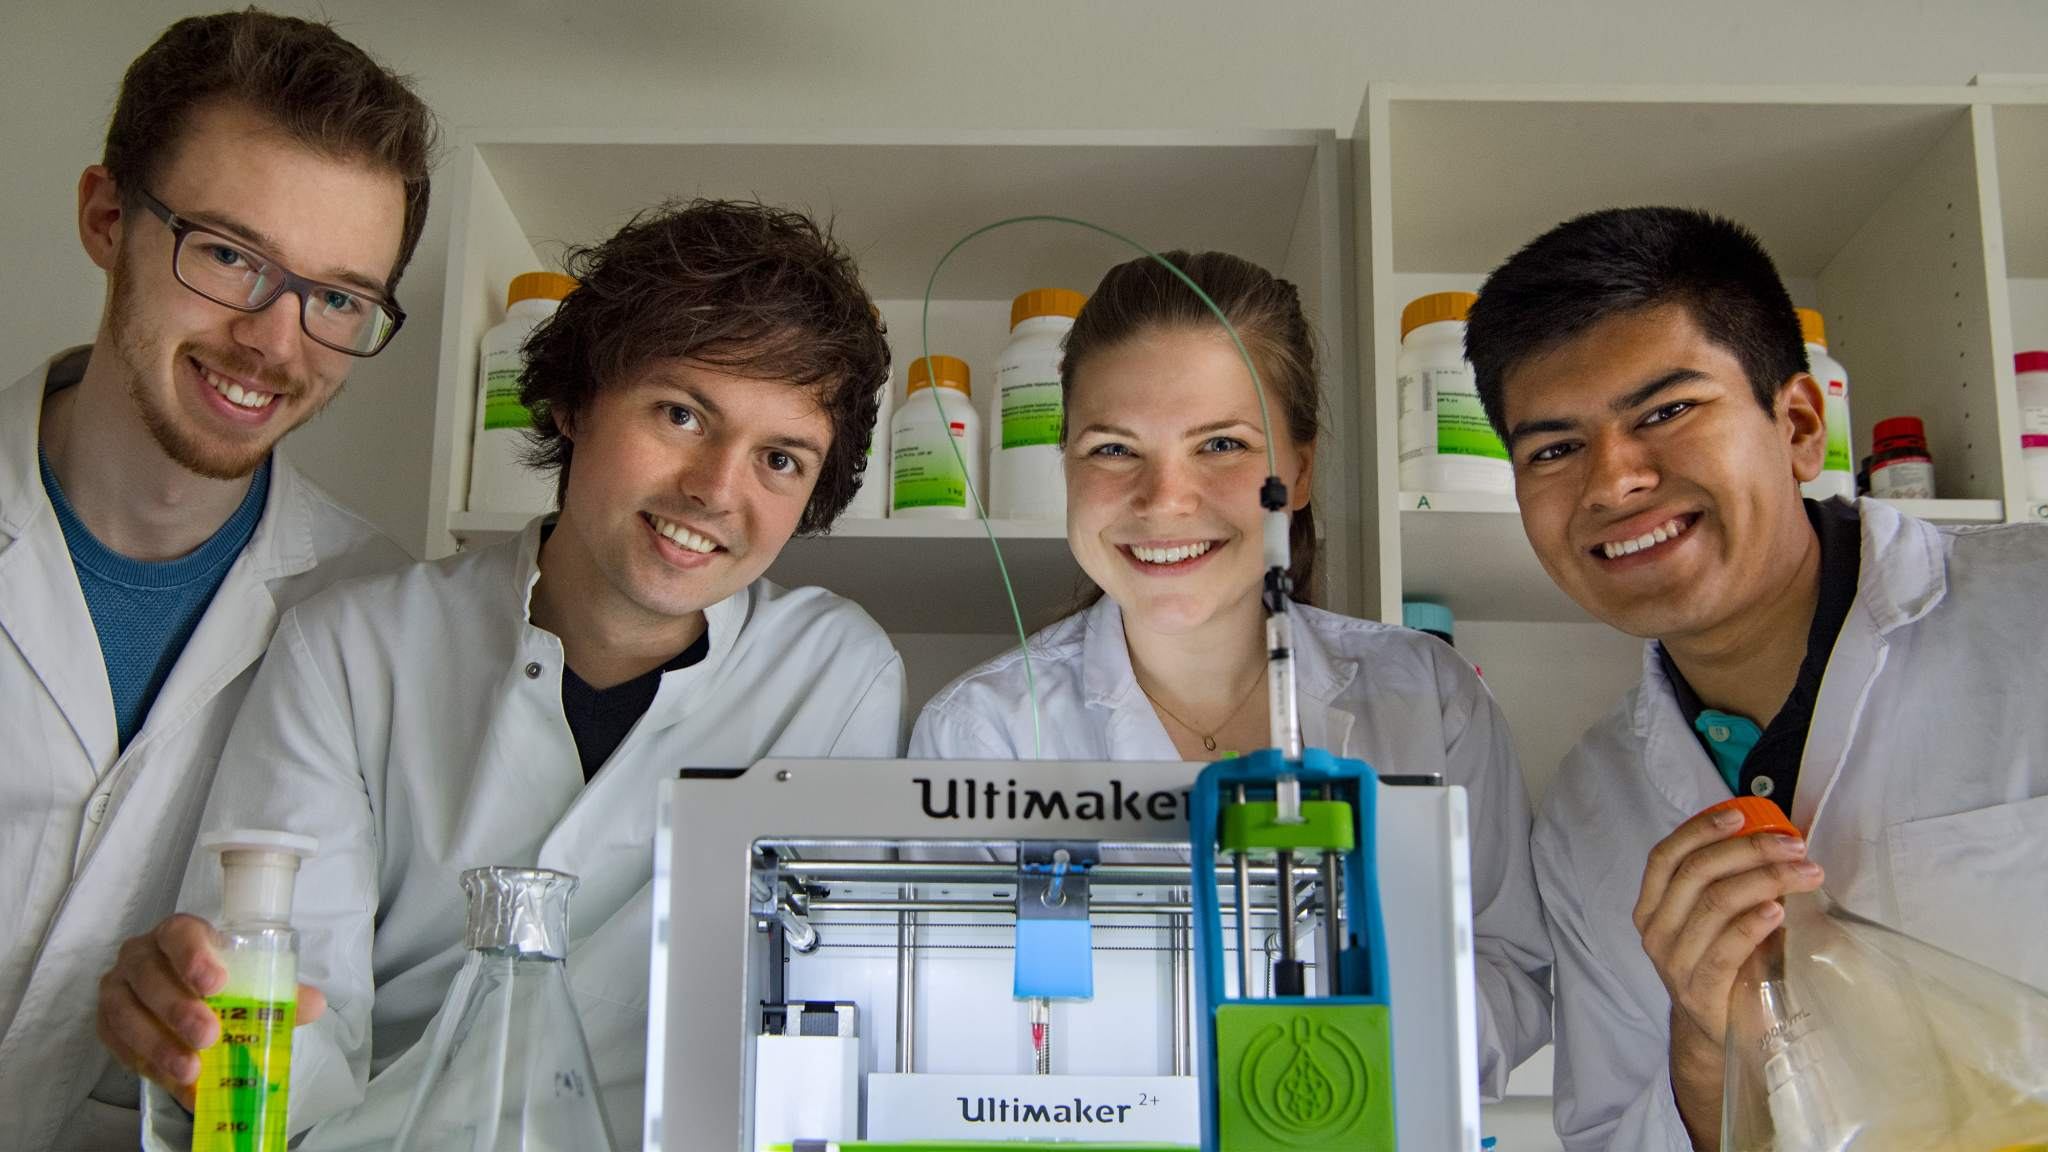 Part of the research team: Julian Hofmann, Christoph Gruber, Luisa Krumwiede and Javier Luna Mazari. Image via: Technical University of Munich